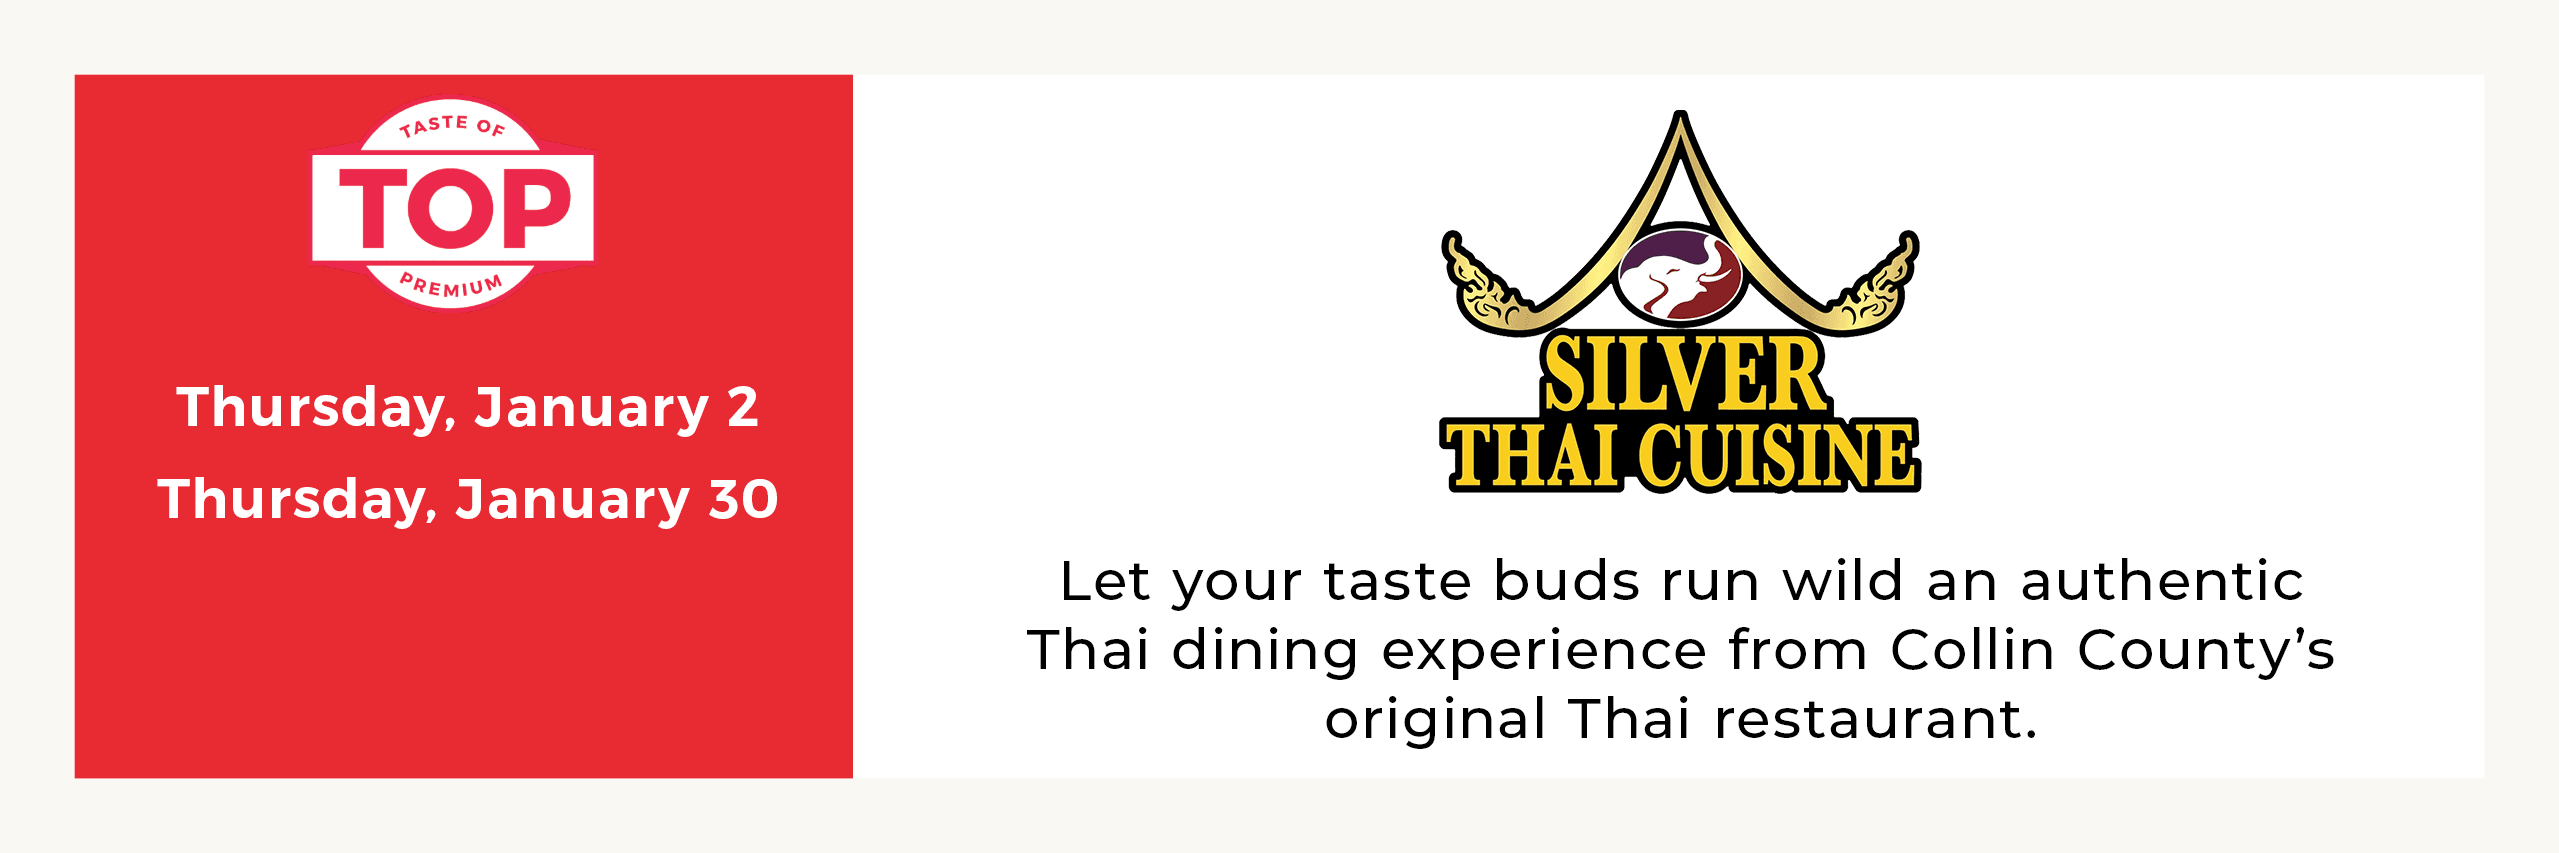 Silver Thai Meal Service Dates Opens in new window